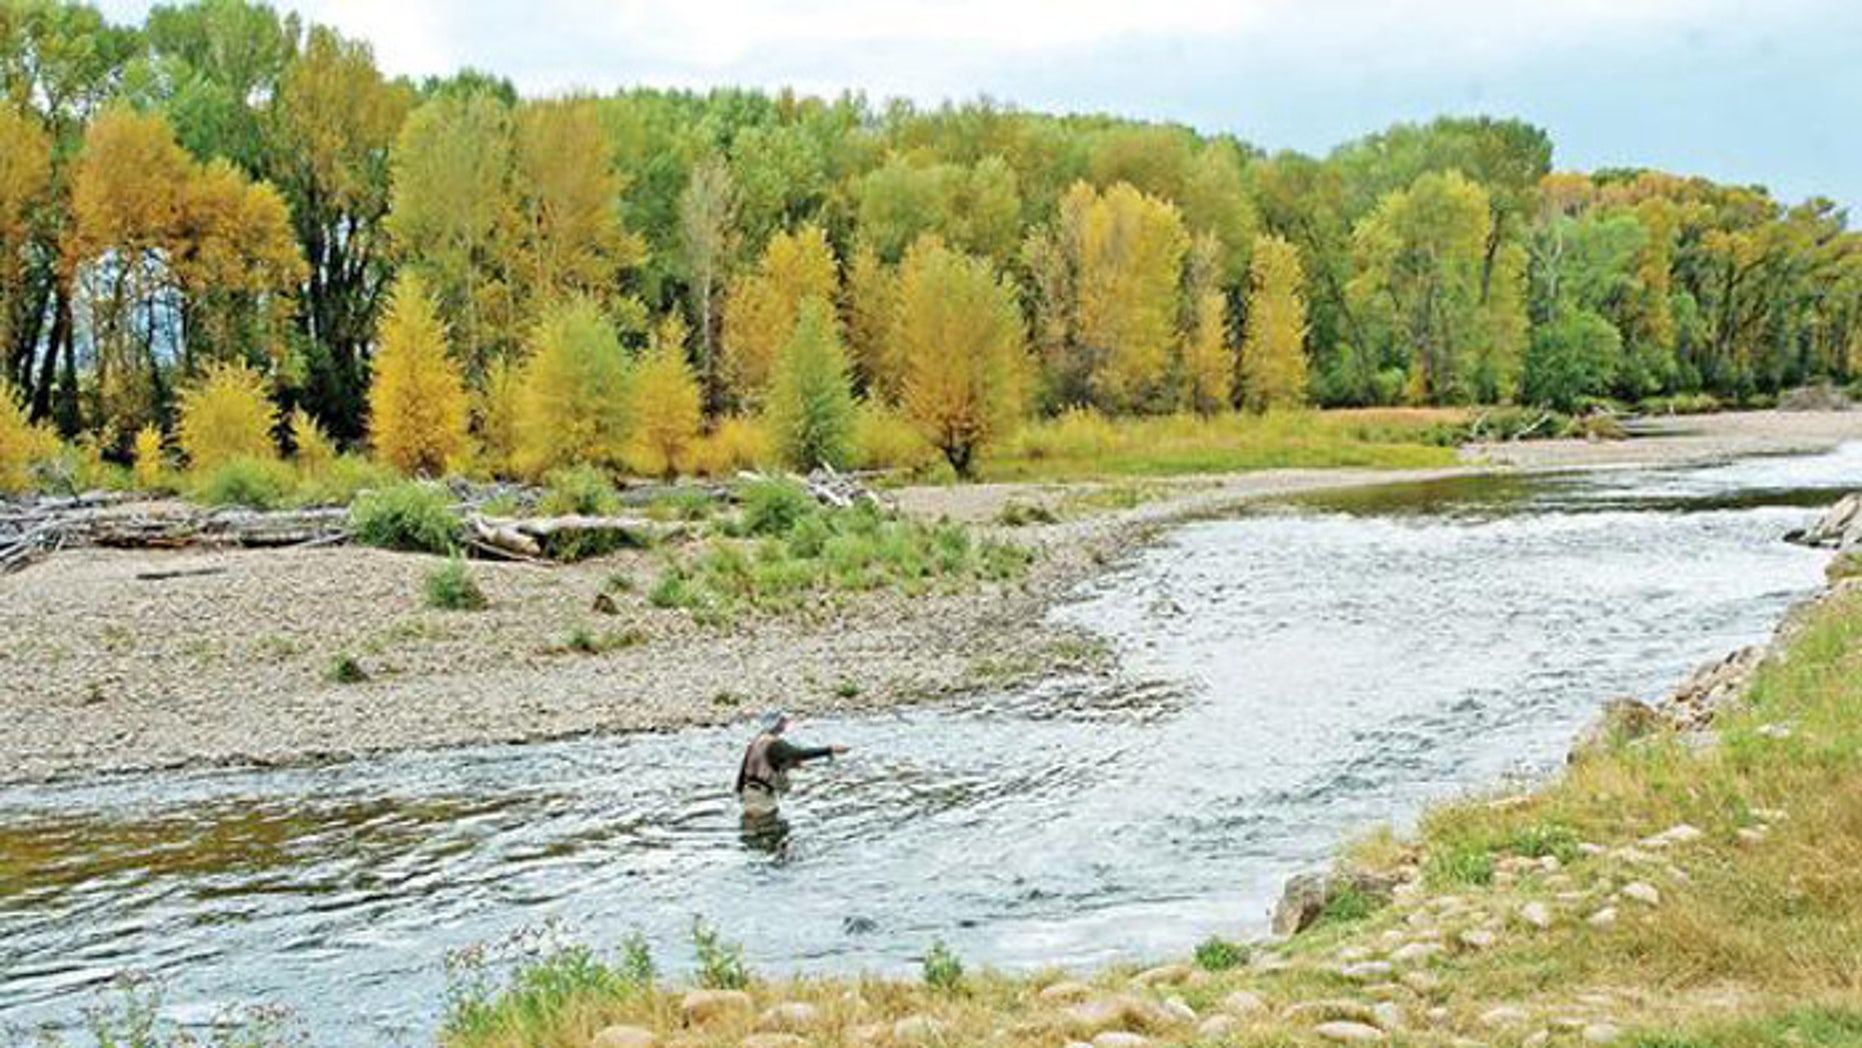 Environmentalists say the state's waterways are being polluted by runoff from ranches. (AP)